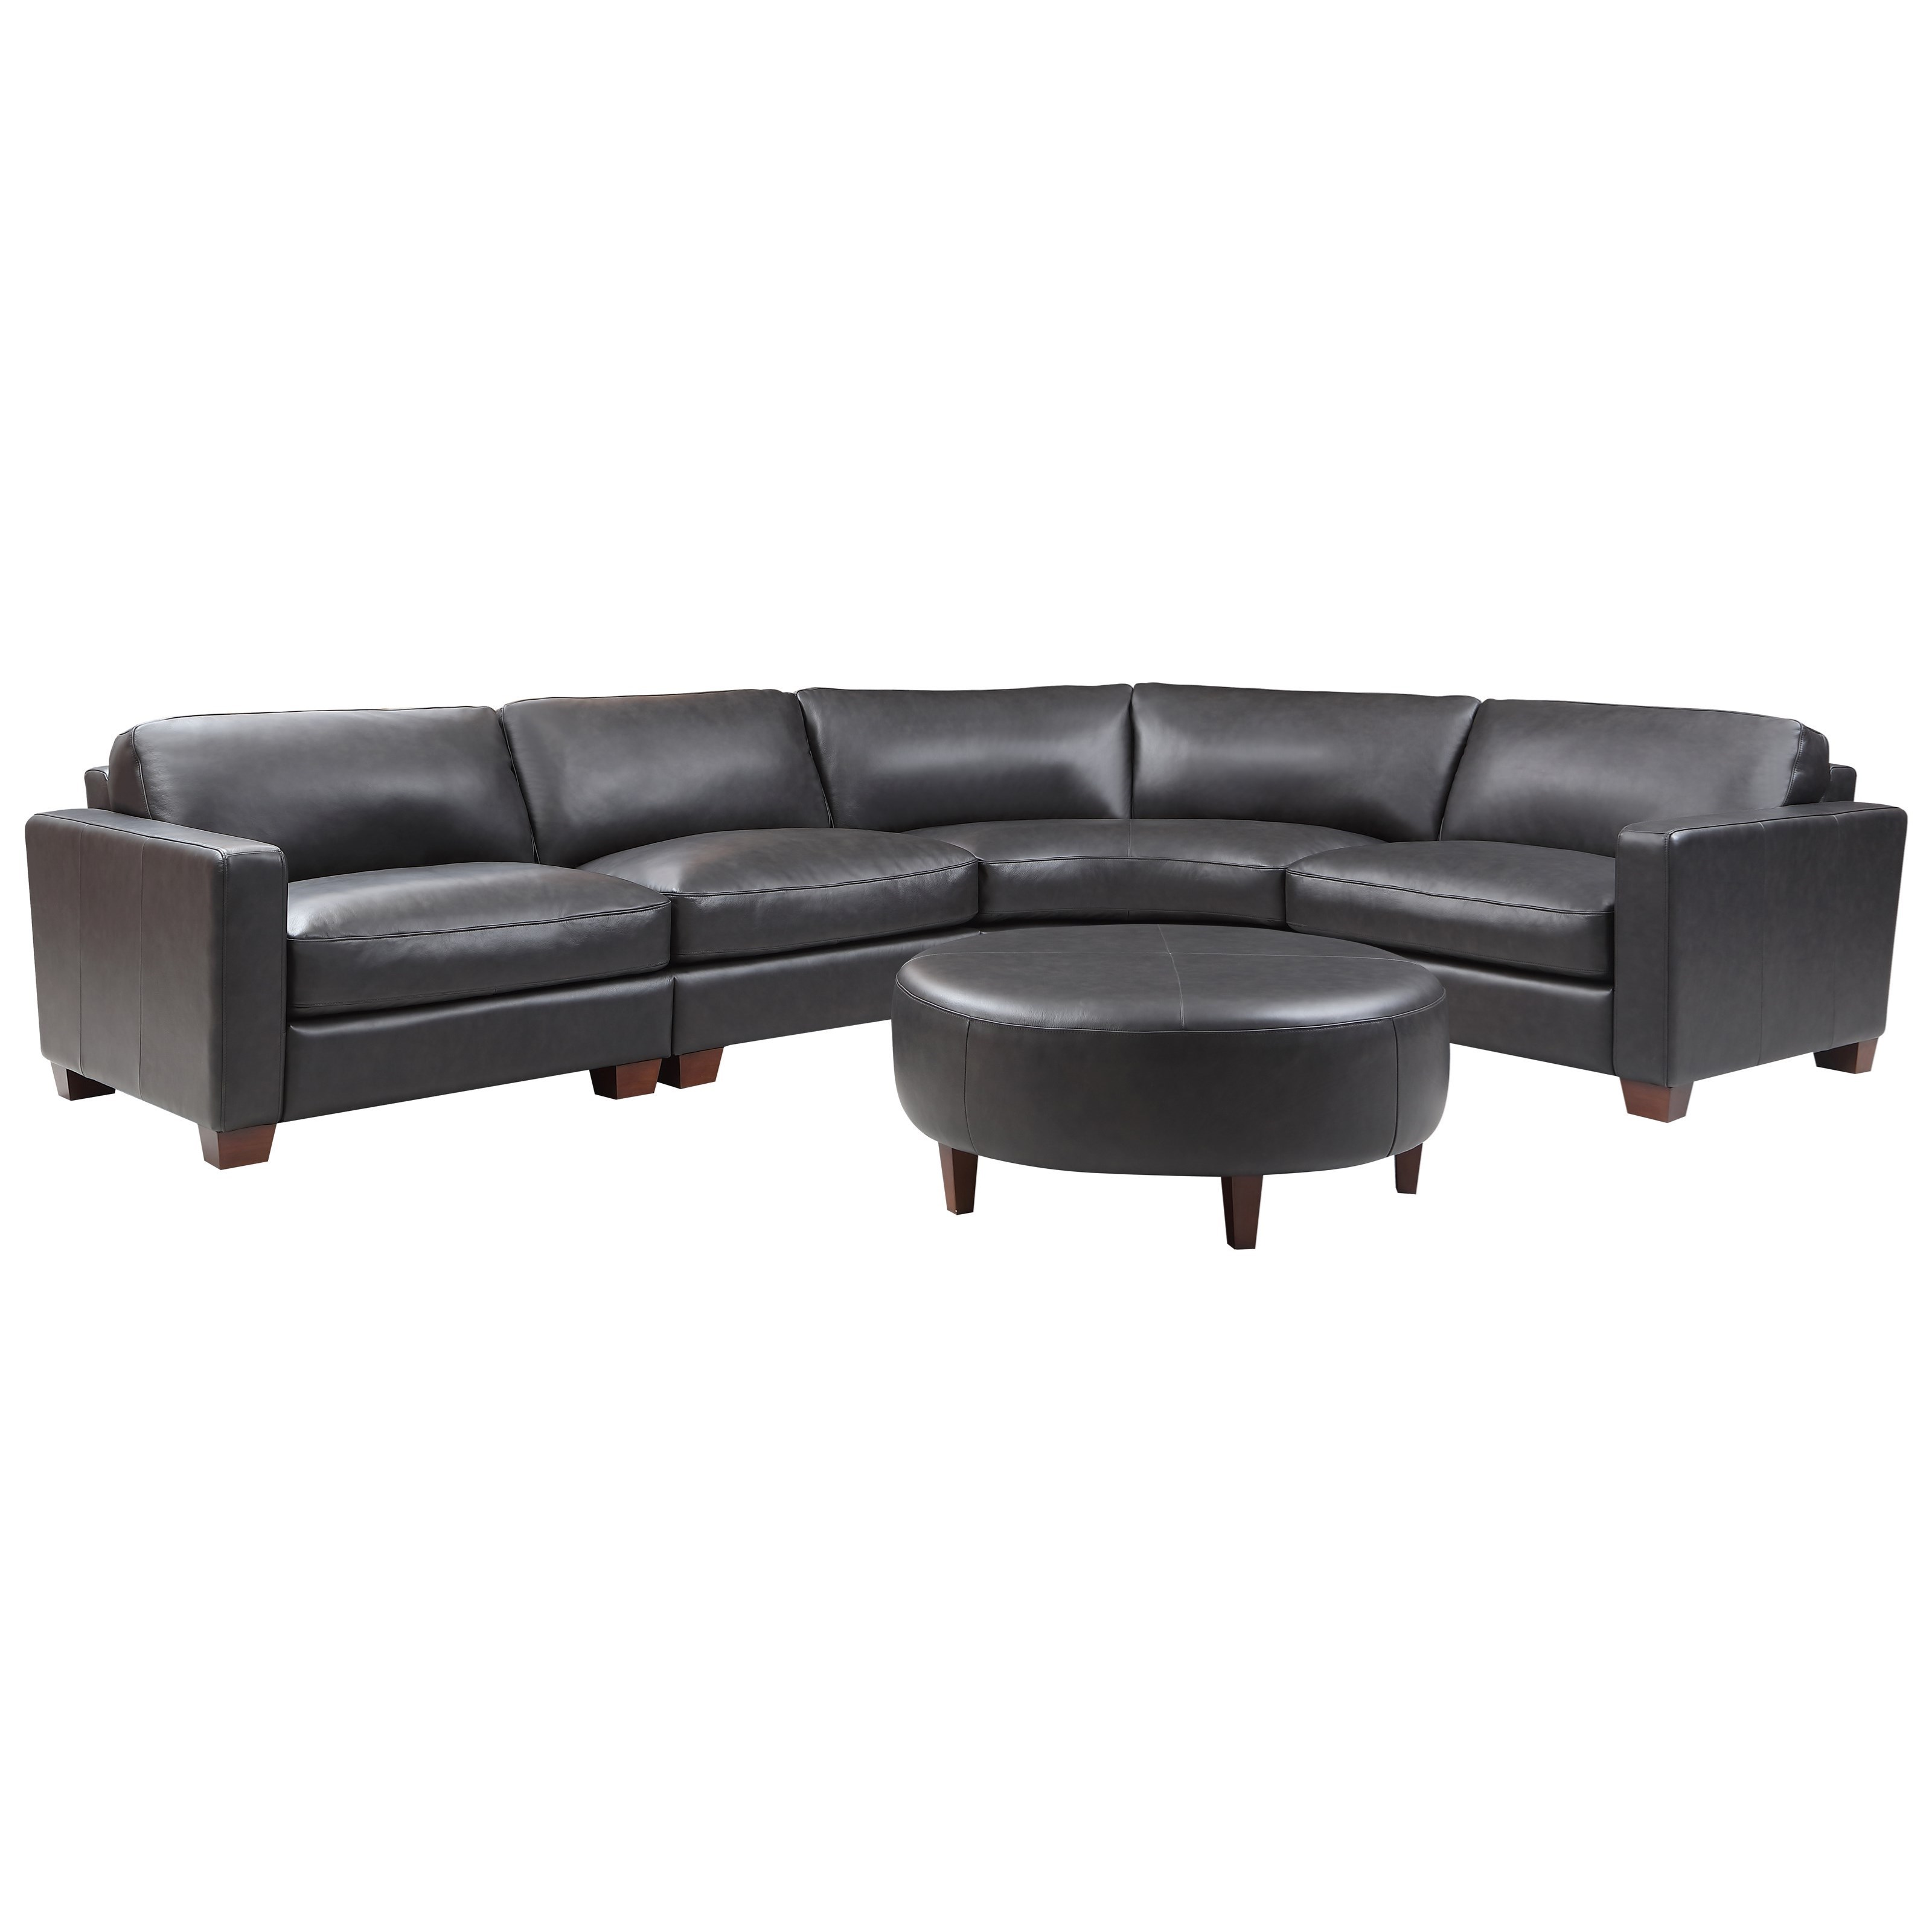 Brent Sectional with Ottoman by Vendor 1919 at Becker Furniture